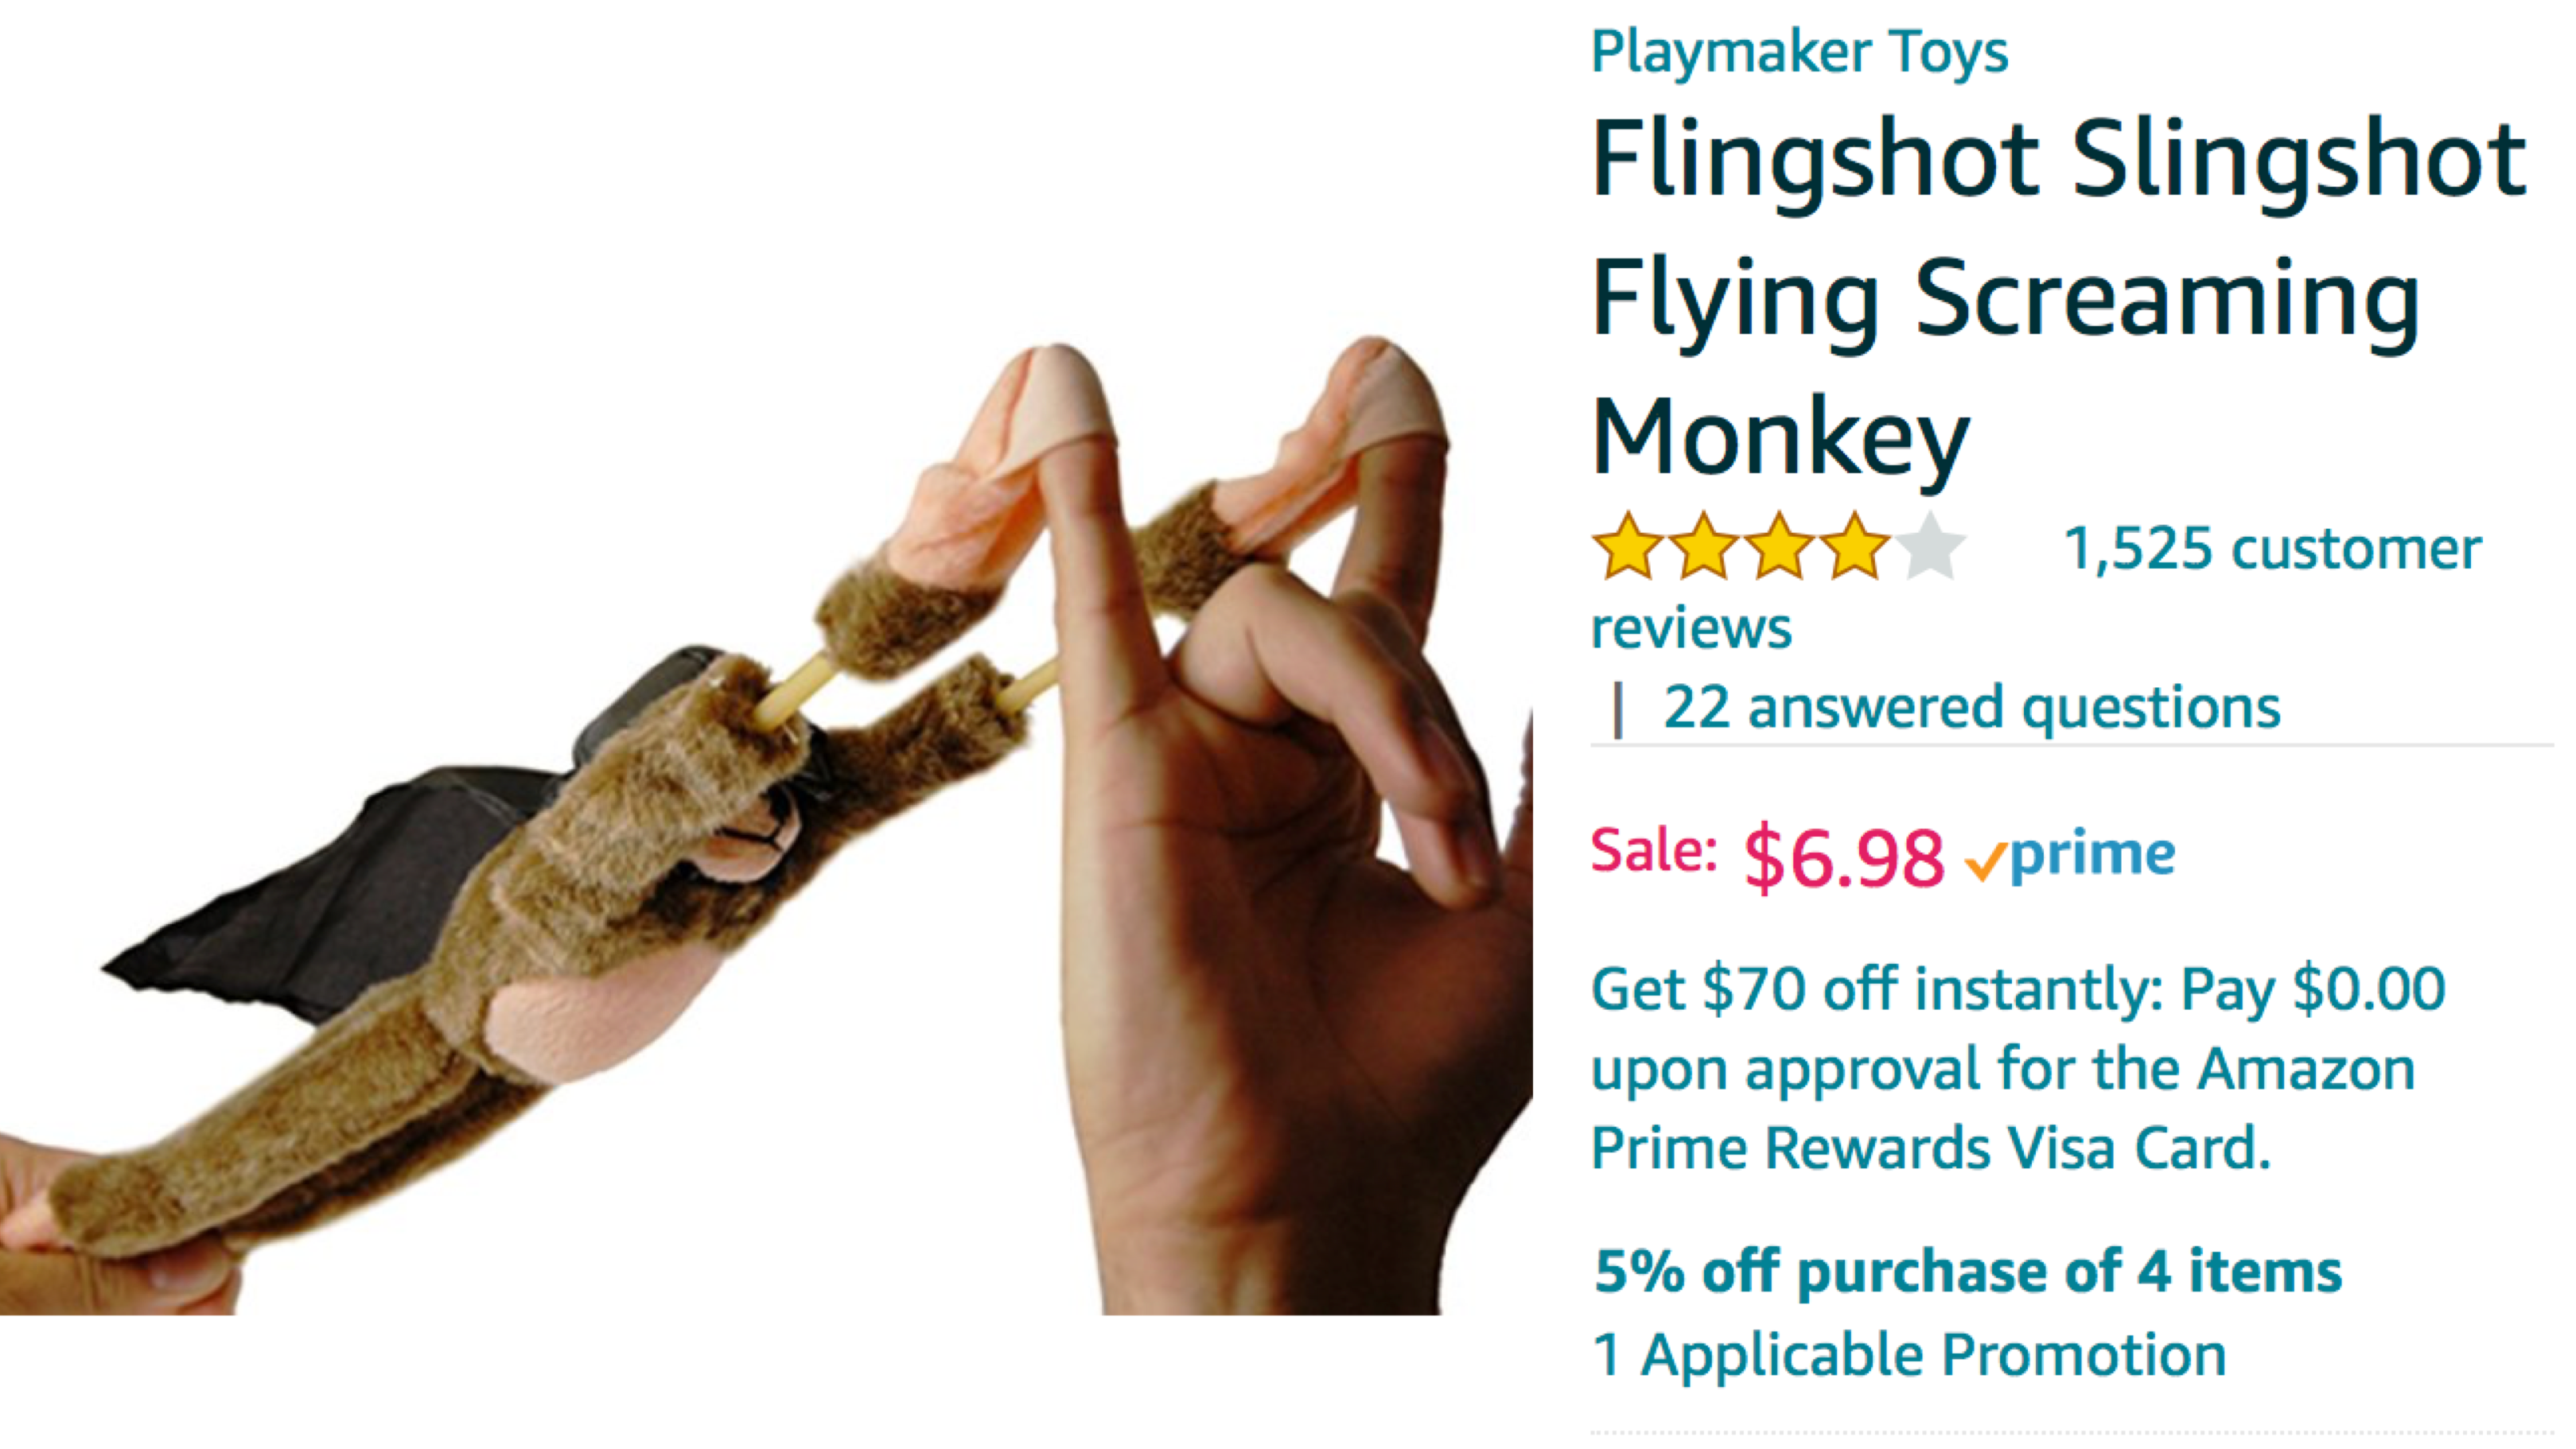 Slingshot Flingshot Flying Screaming Monkey